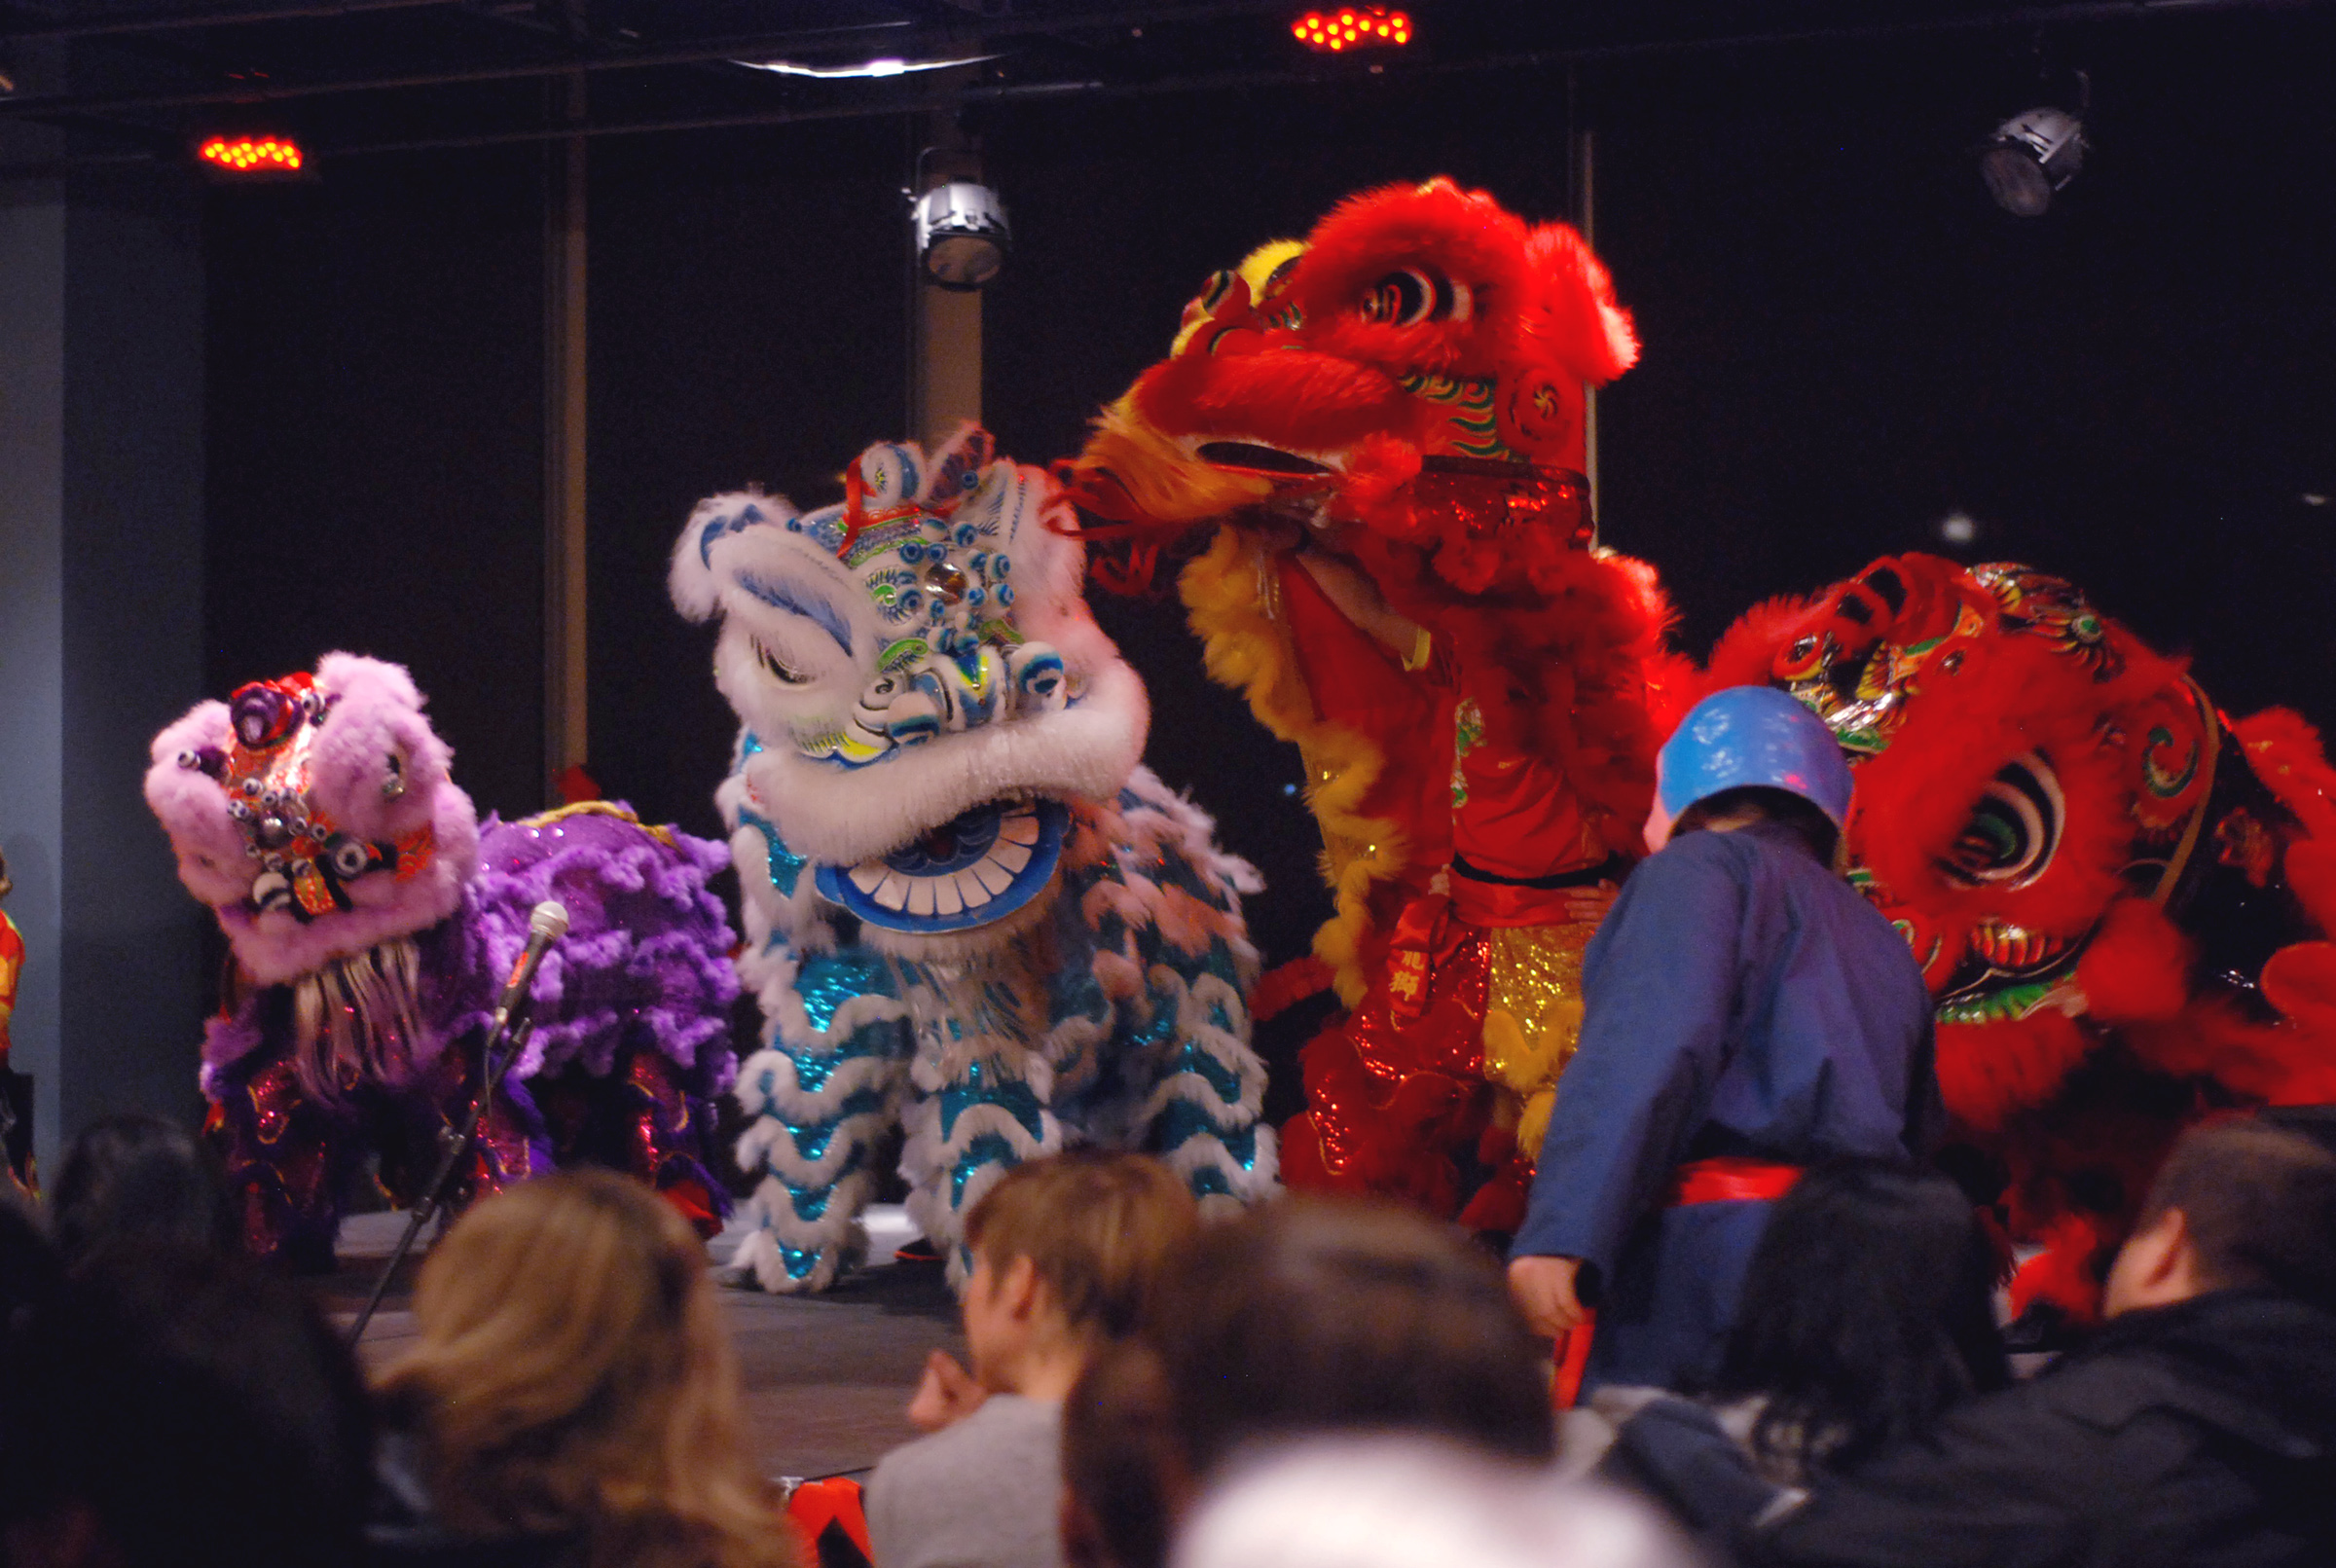 Lunar New Year showcases a wide variety of cultural